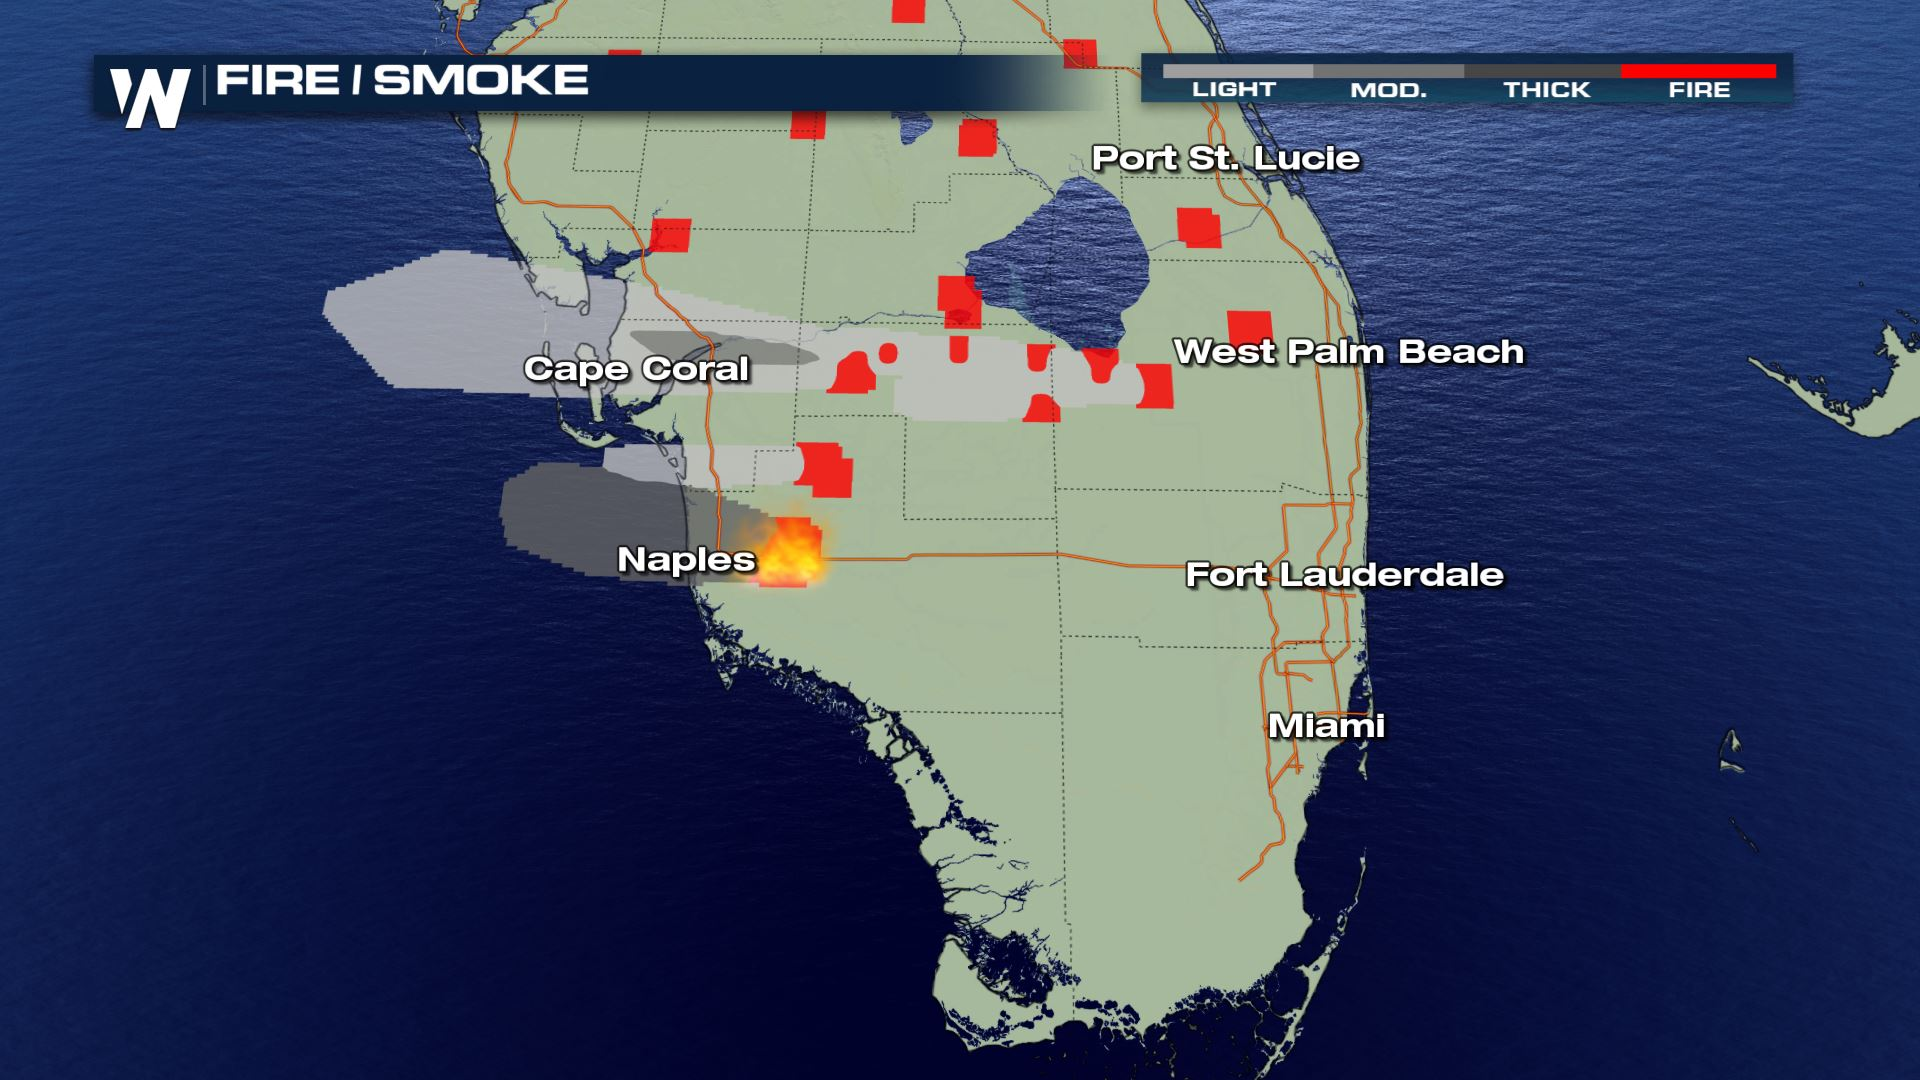 Map Of Florida Fires Wildfires Burning in Southwest Florida   WeatherNation